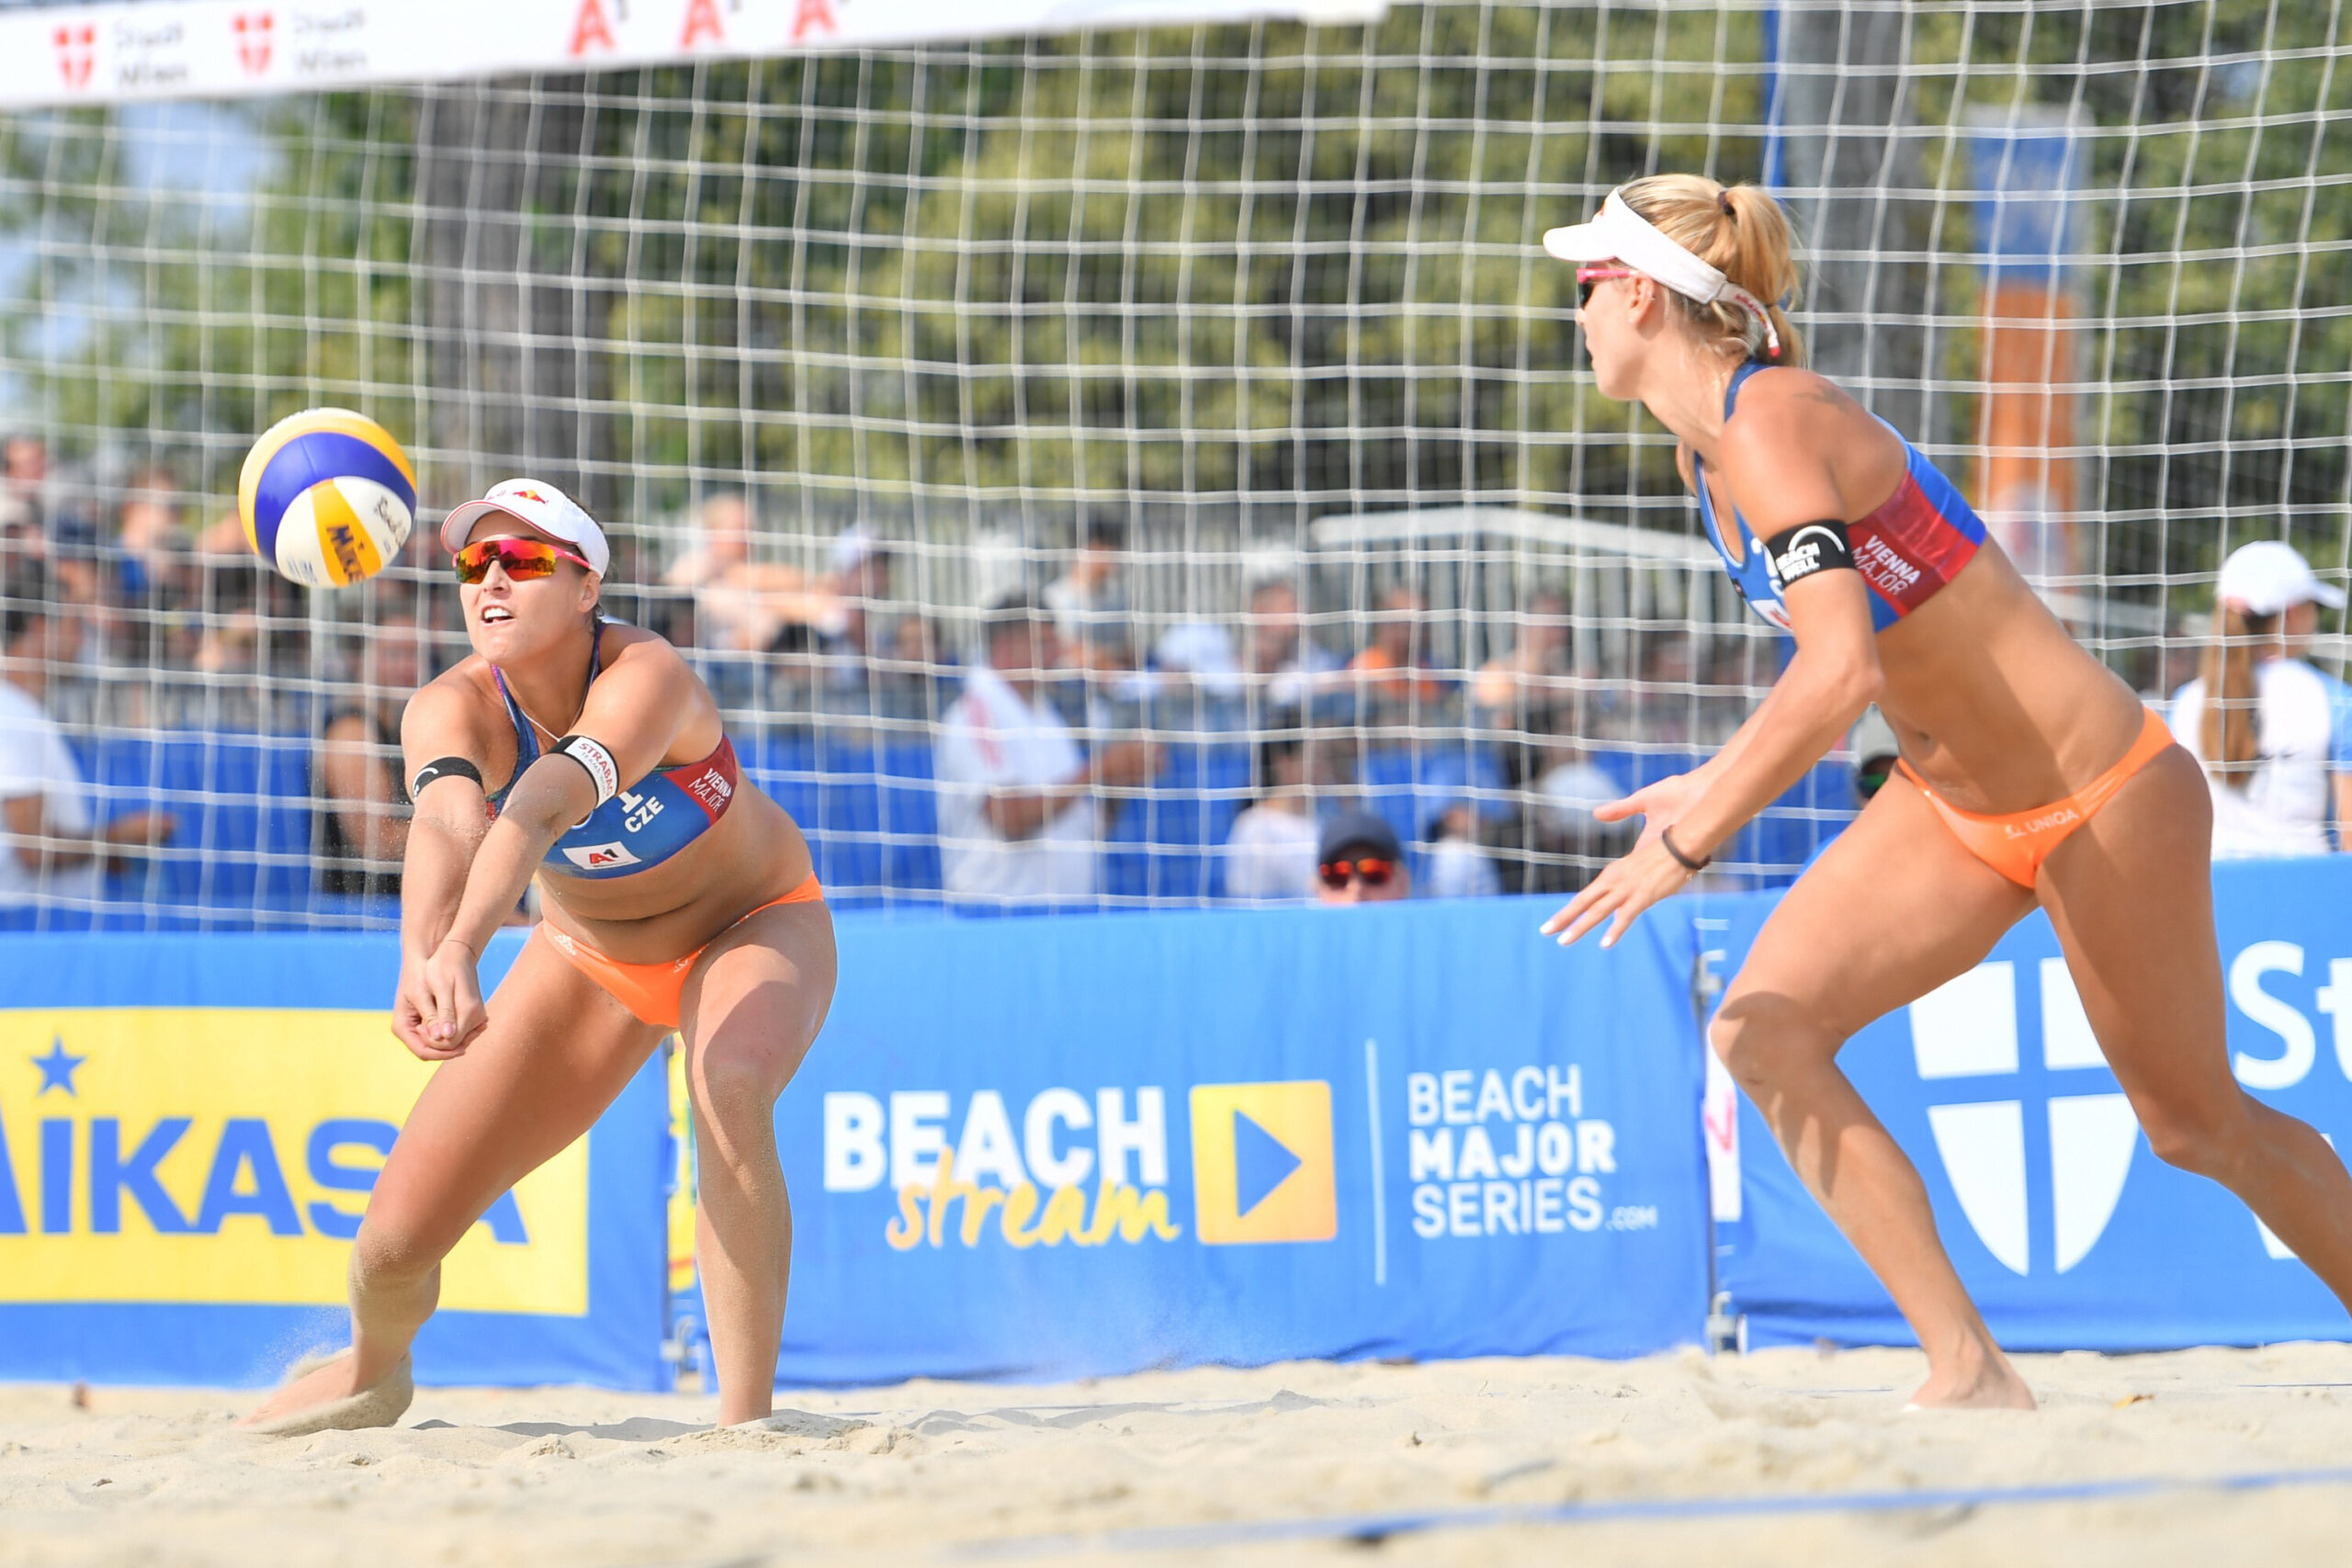 <i>Andrea Kareth/Getty Images</i><br/>Hermannova passes the ball to Sluková-Nausch. Czech beach volleyball players Markéta Sluková-Nausch and Barbora Hermannova are coming to terms with being ruled out of the 2020 Tokyo Olympic Games as the European team grapples with a growing Covid-19 problem.